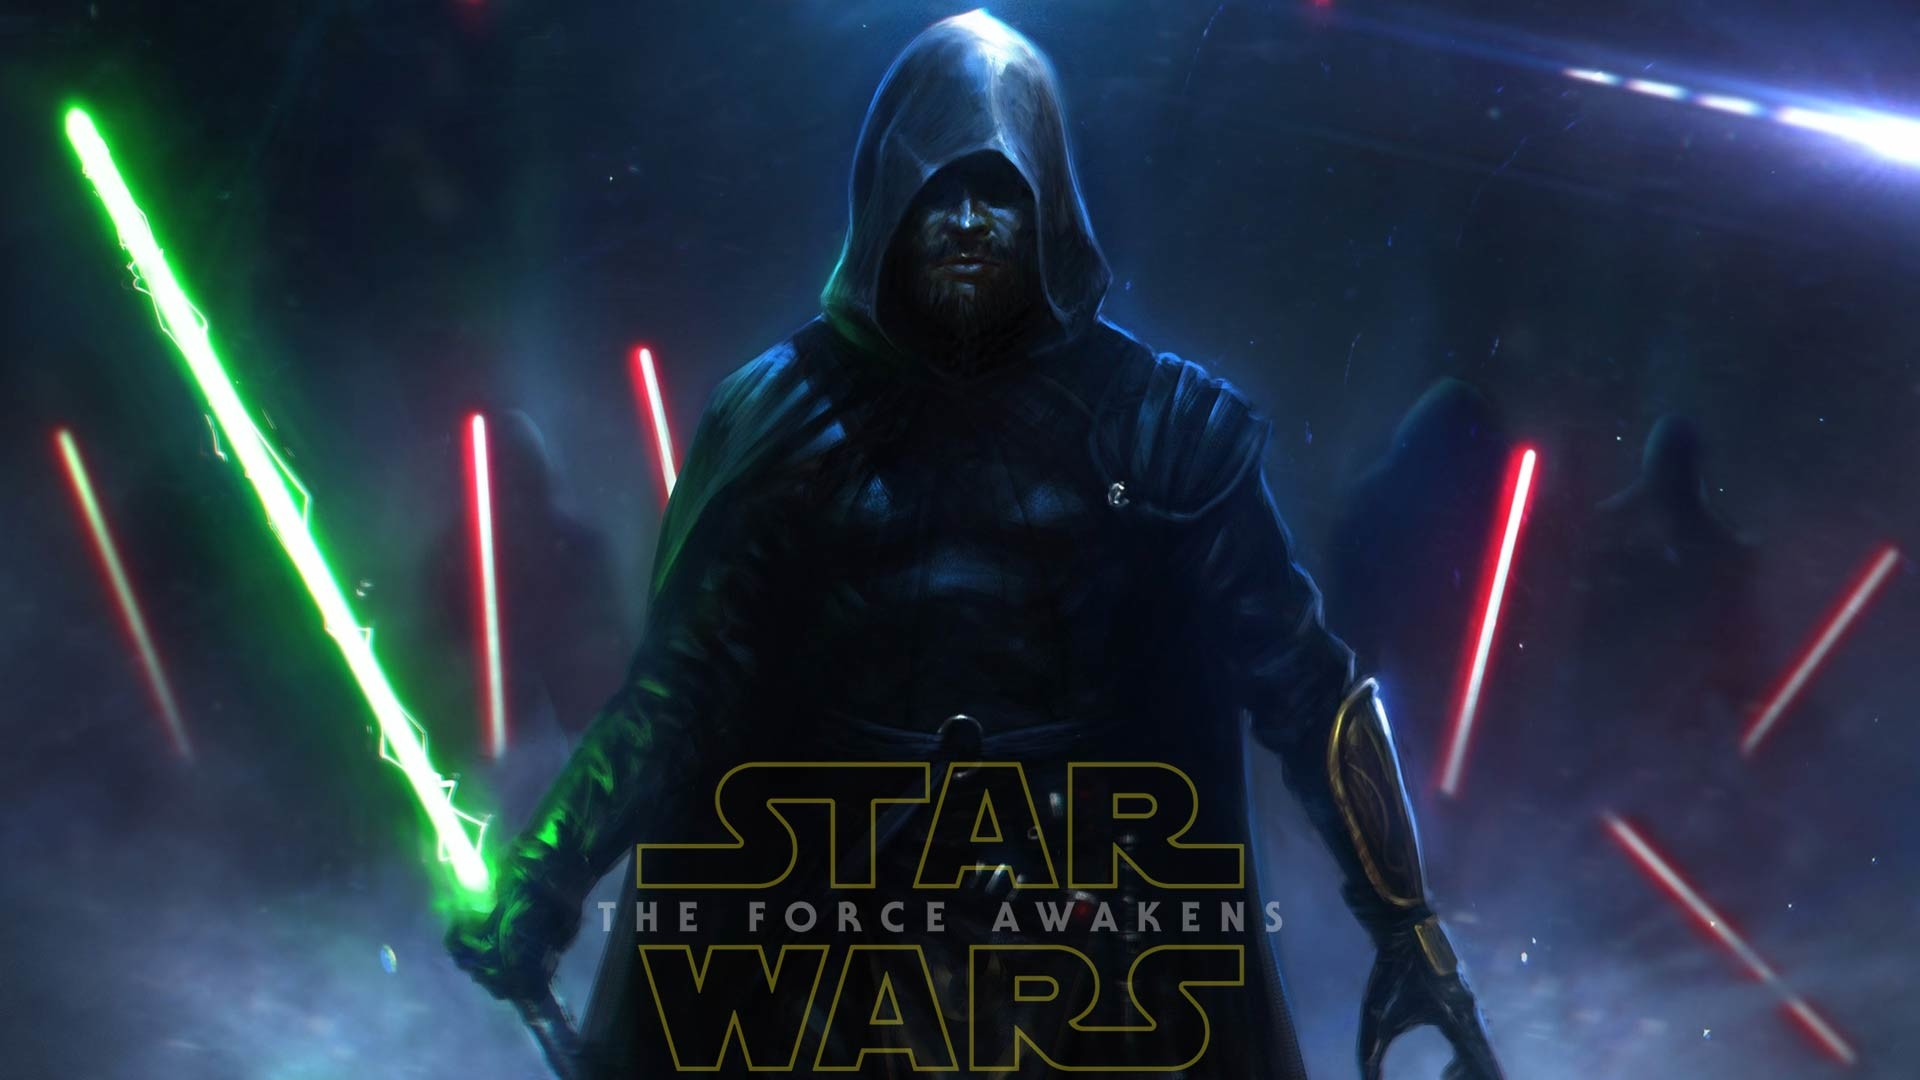 … star wars the force awakens wallpapers live hd wallpapers …